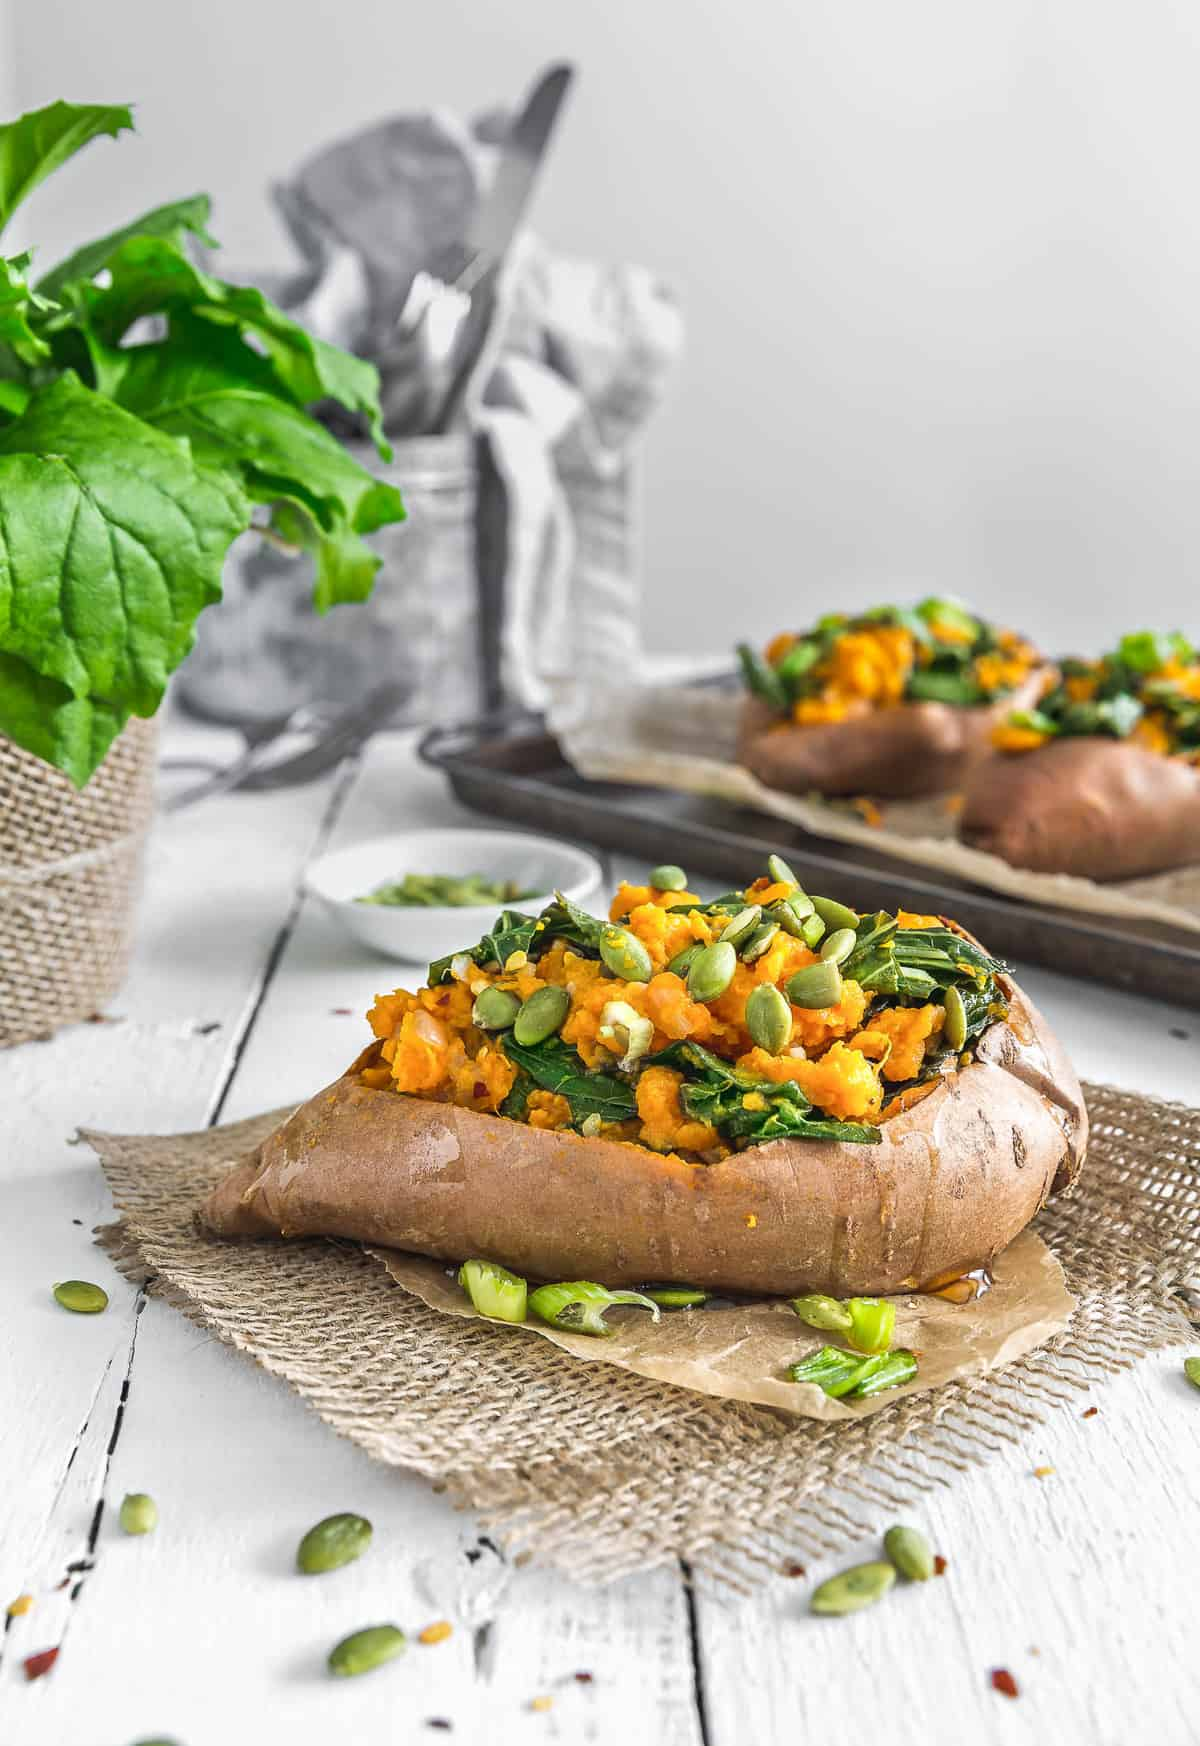 Collard Green Stuffed Sweet Potatoes, collard greens, sweet potatoes, vegan stuffed sweet potatoes, vegan dinner, vegan collard greens, vegan meals, plant based, vegan, vegetarian, whole food plant based, gluten free, recipe, wfpb, healthy, healthy vegan, oil free, no refined sugar, no oil, refined sugar free, dairy free, vegan lunch, dinner, lunch, easy recipe, potatoes, greens, summer